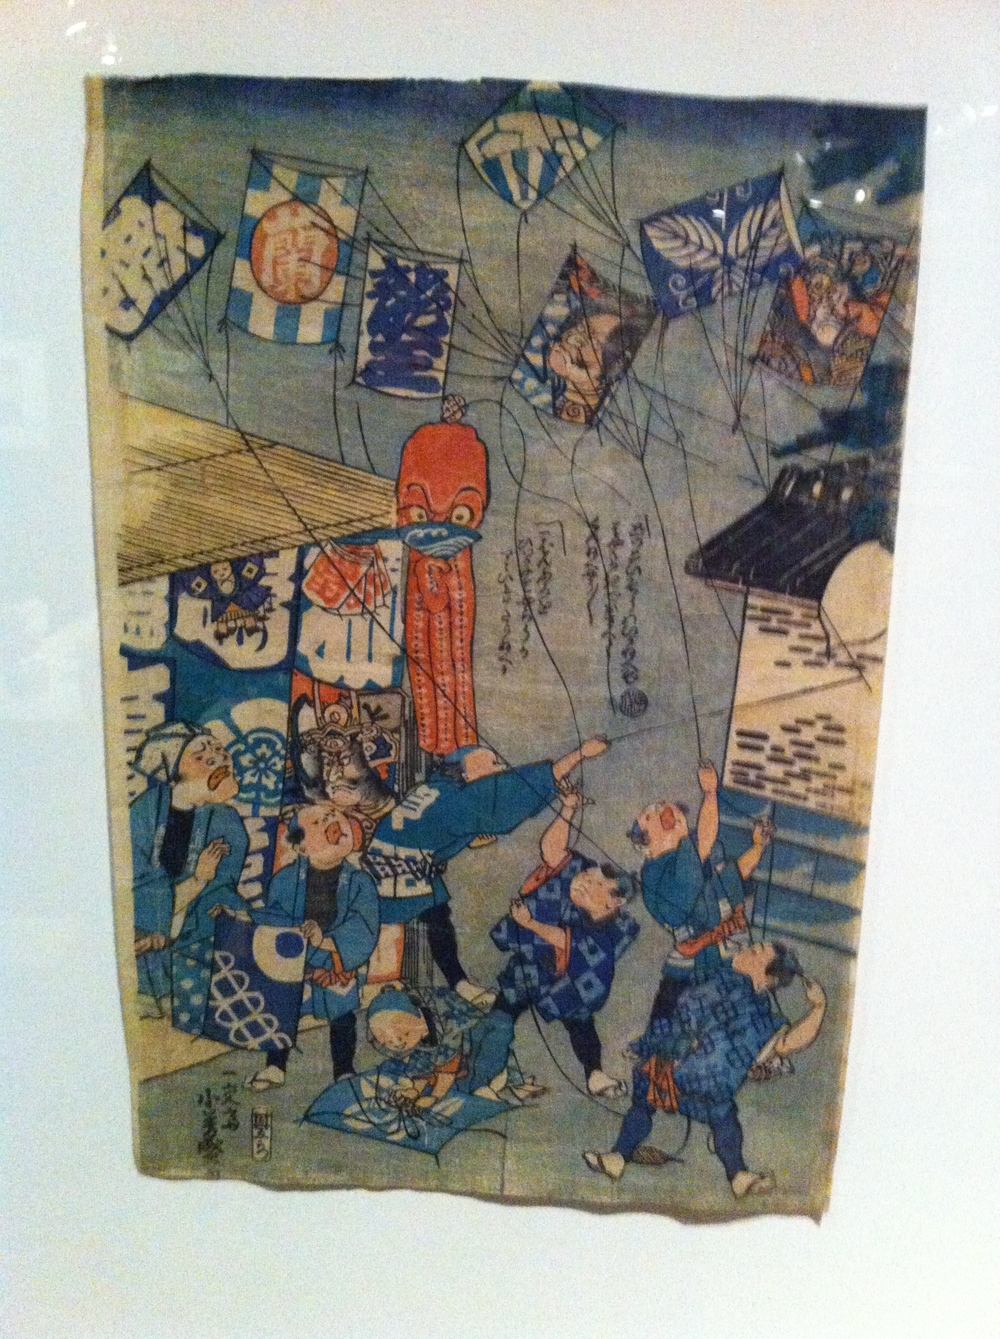 Historic artwork illustrating the kite fighting tradition.